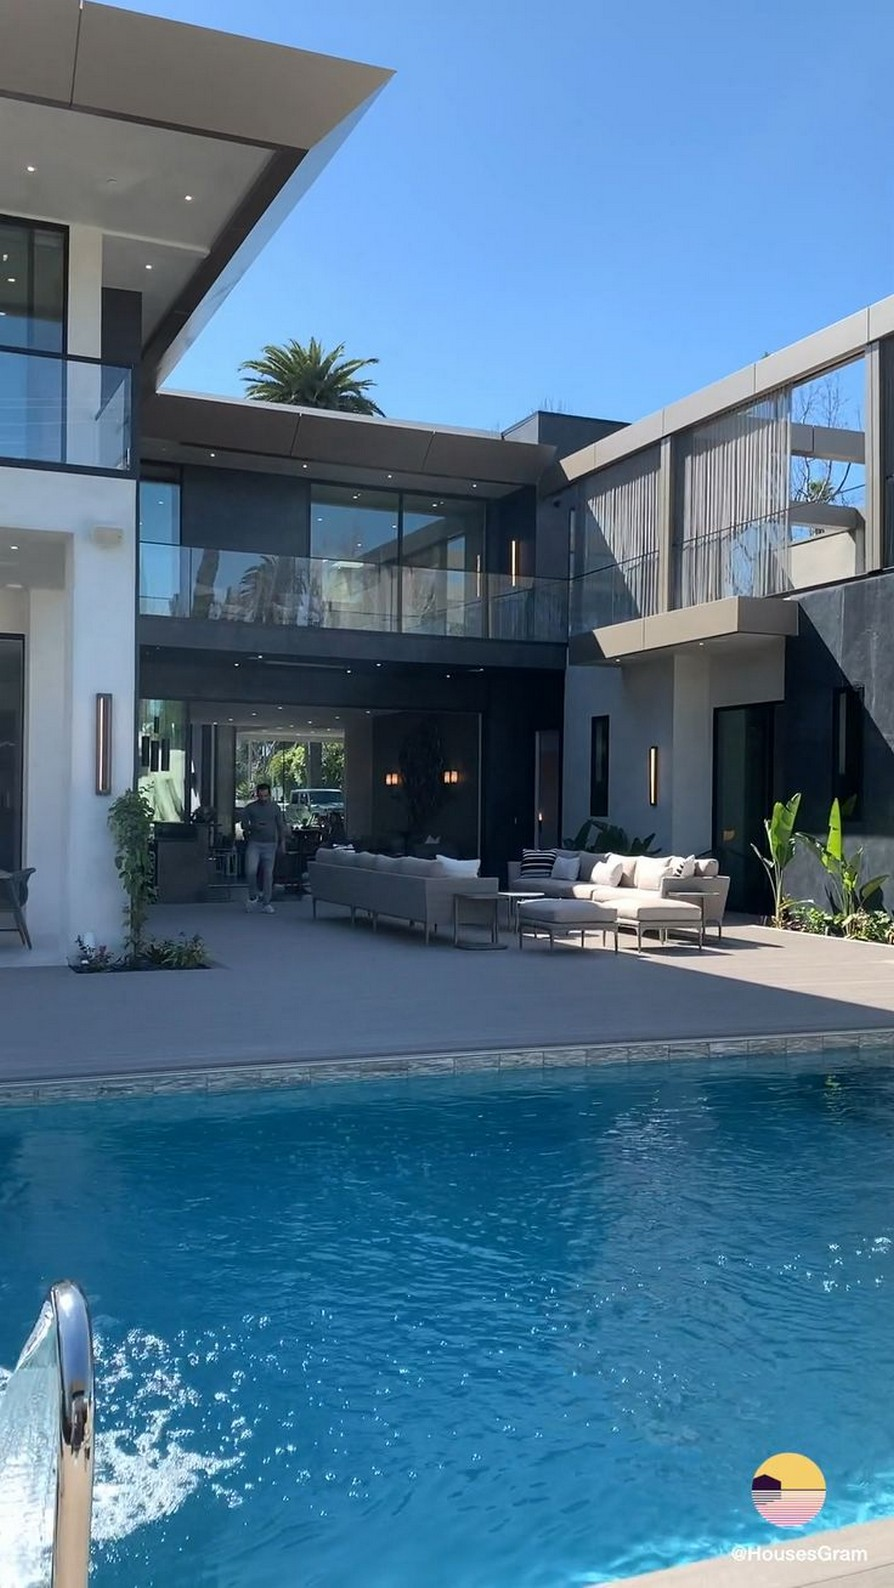 40 Fascinating Pool House Ideas 1